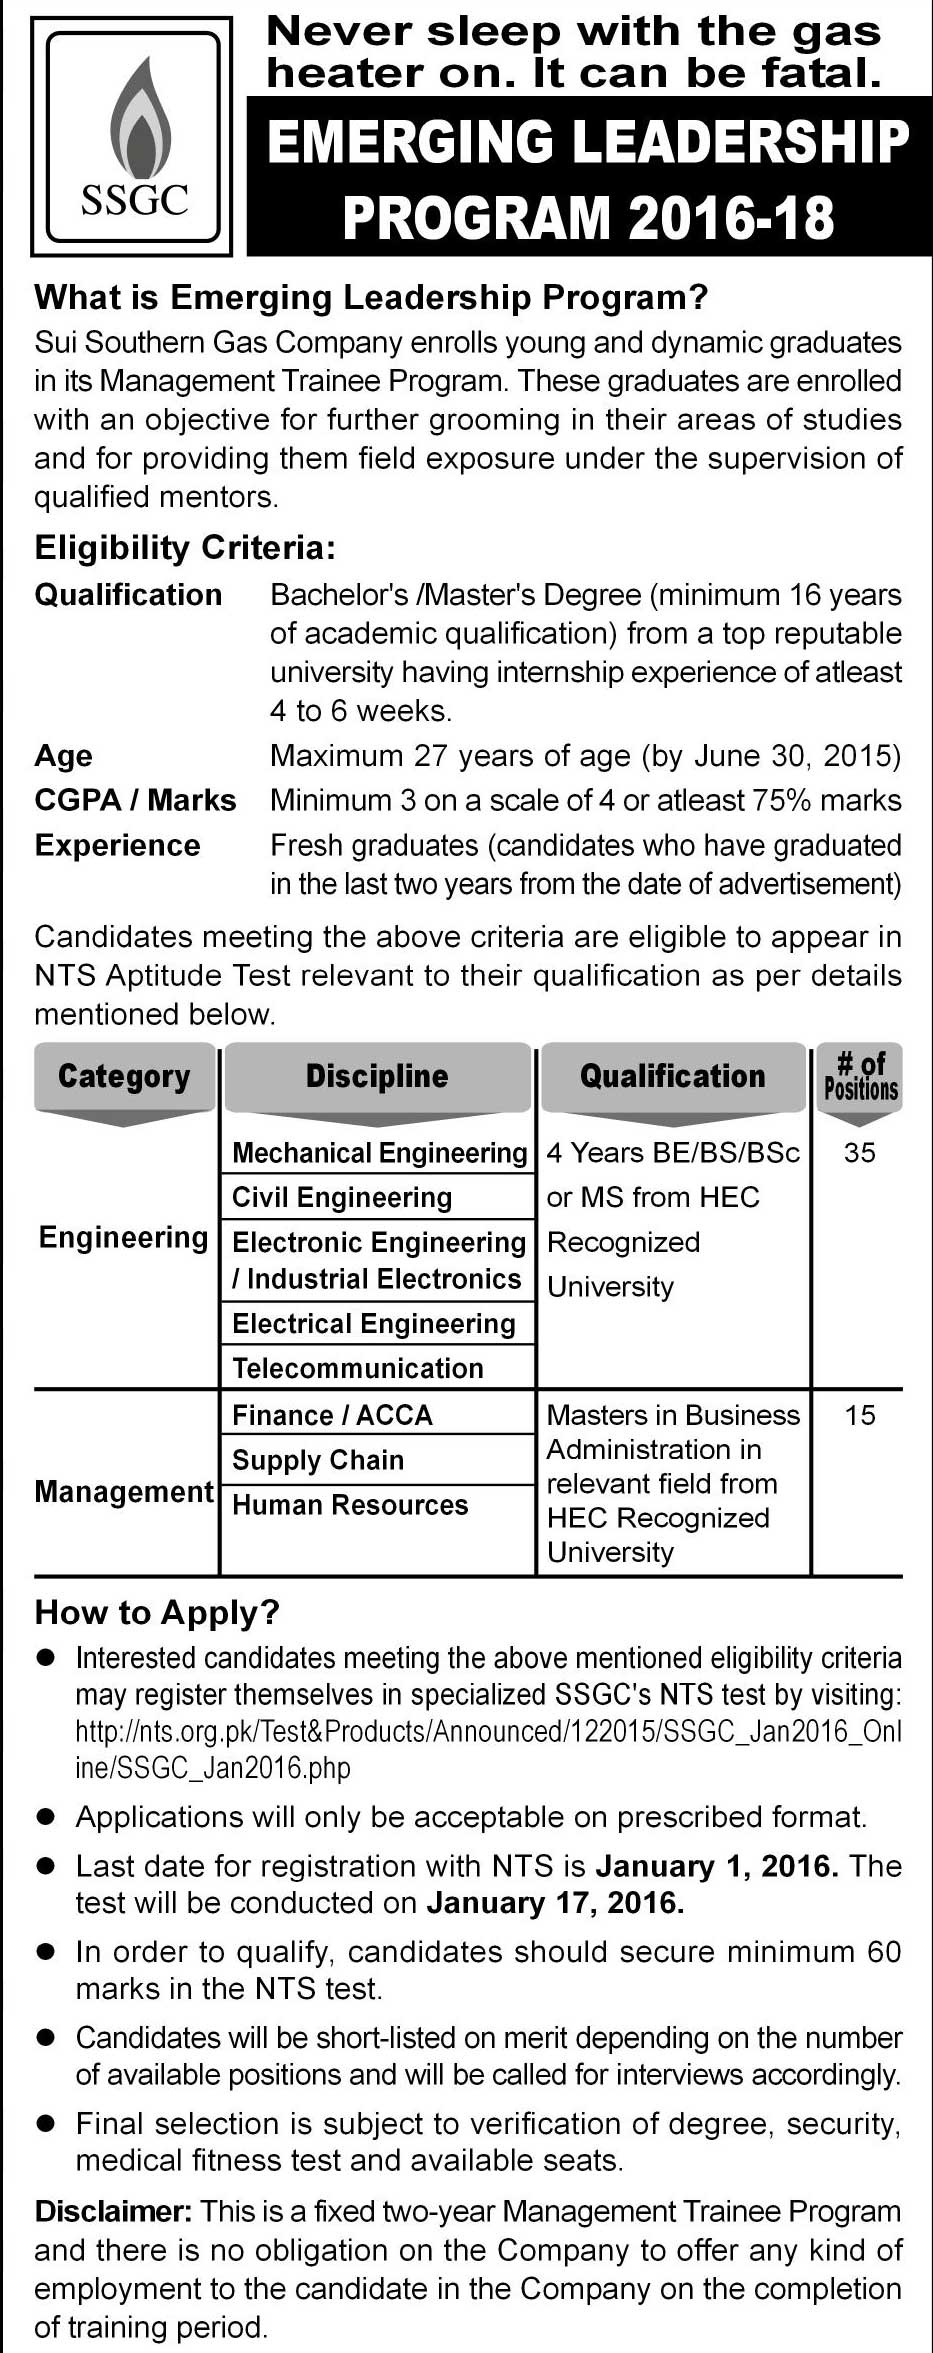 Sui Southern Gas Company SSGC Emerging Leadership Program 2016-18 NTS Form Eligibility